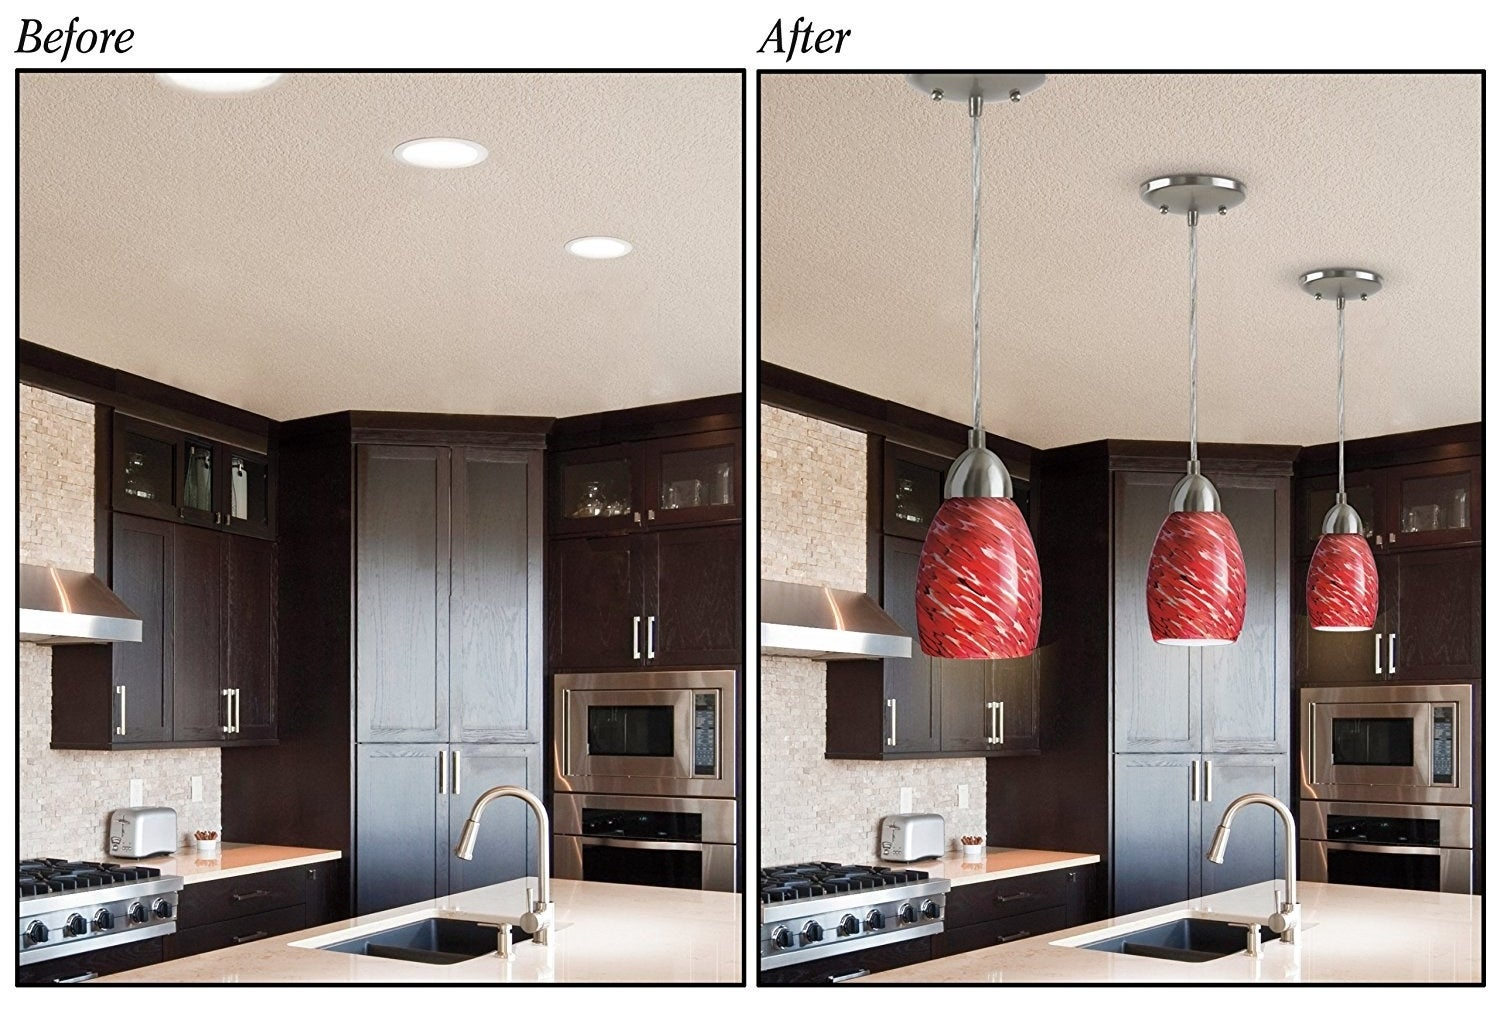 A before and after photo showing the changes made with the conversion kit in someones kitchen